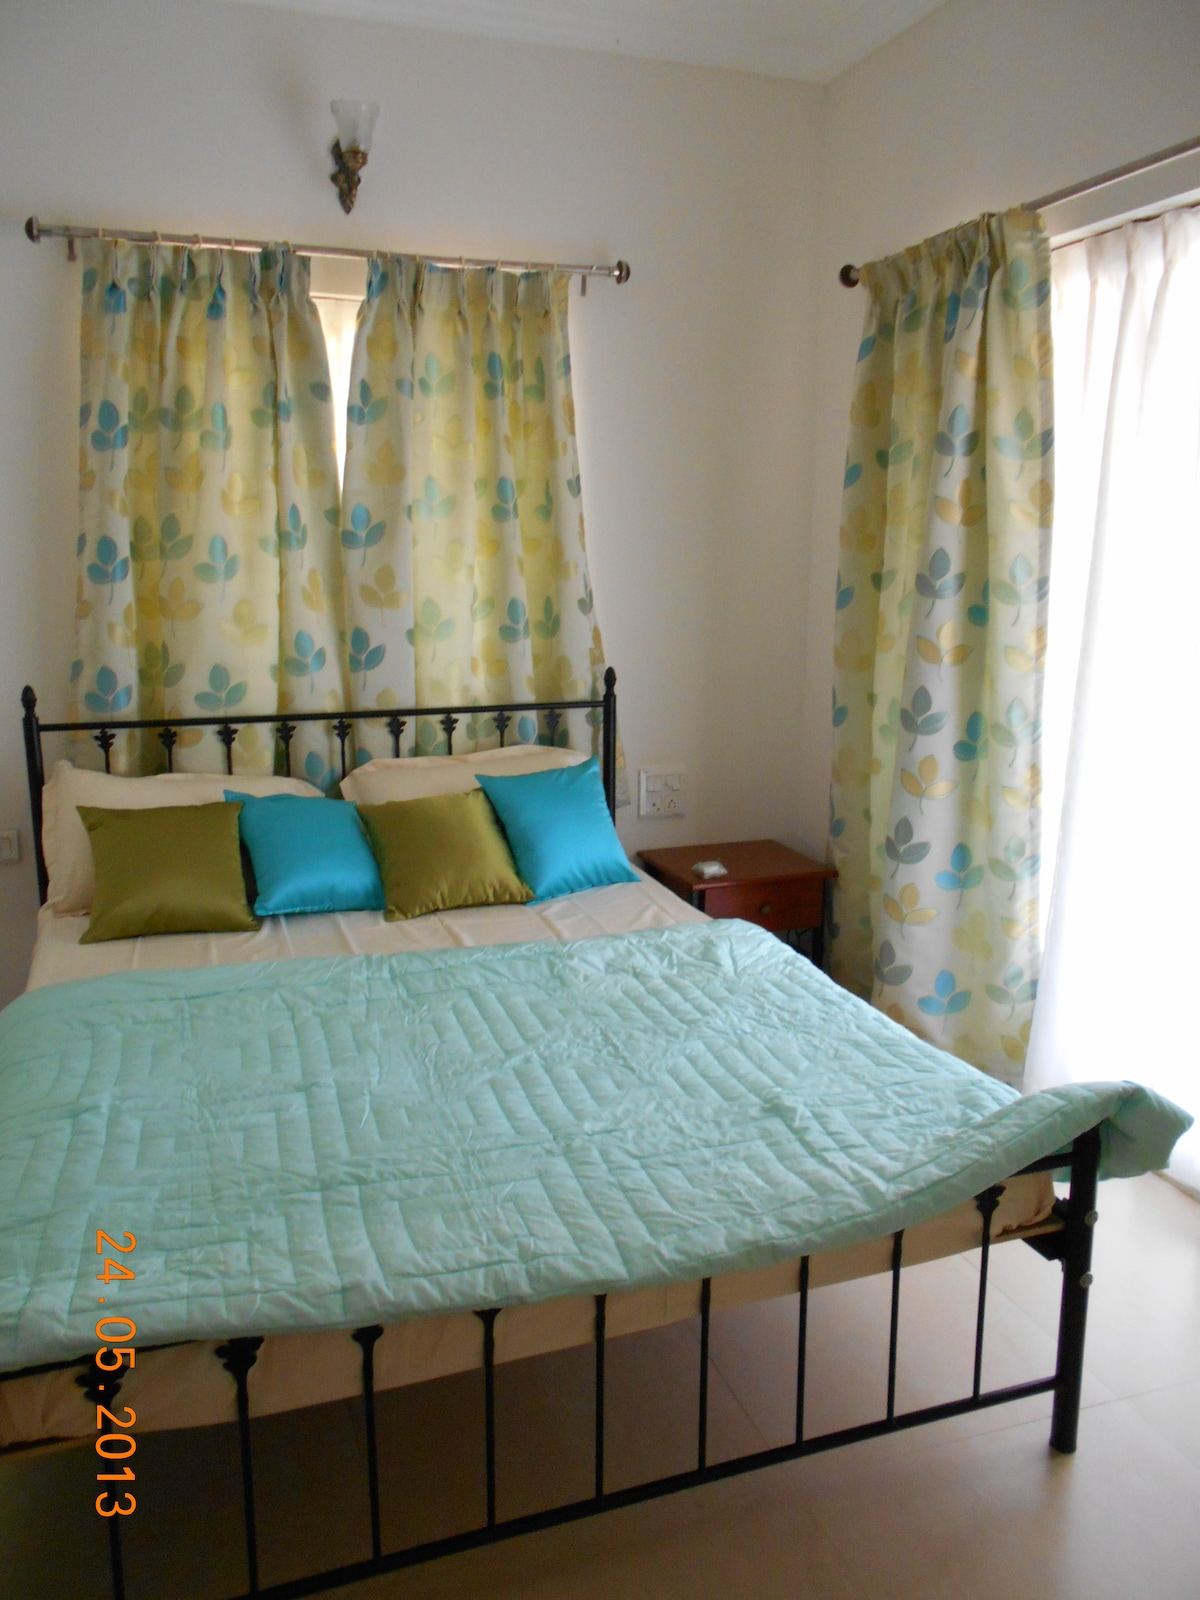 The bedroom is inviting, done up in cool pastels it overlooks the main entrance gate and the security guard is always at your beckon call